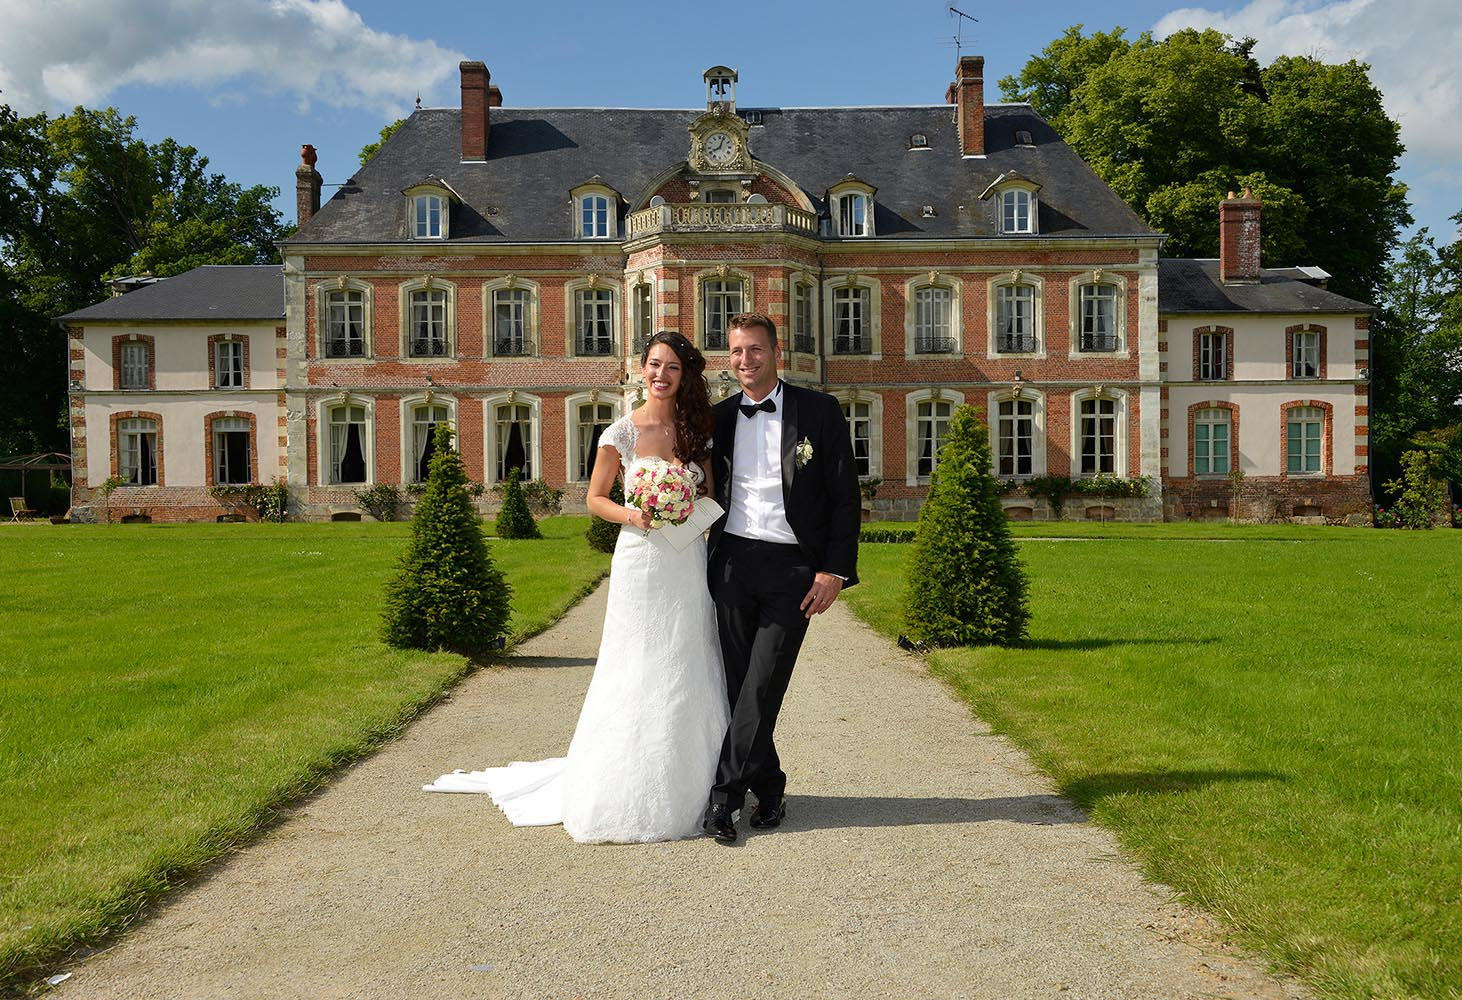 Wedding couple in front of castle at Saint-Leger-de-Rotes, France